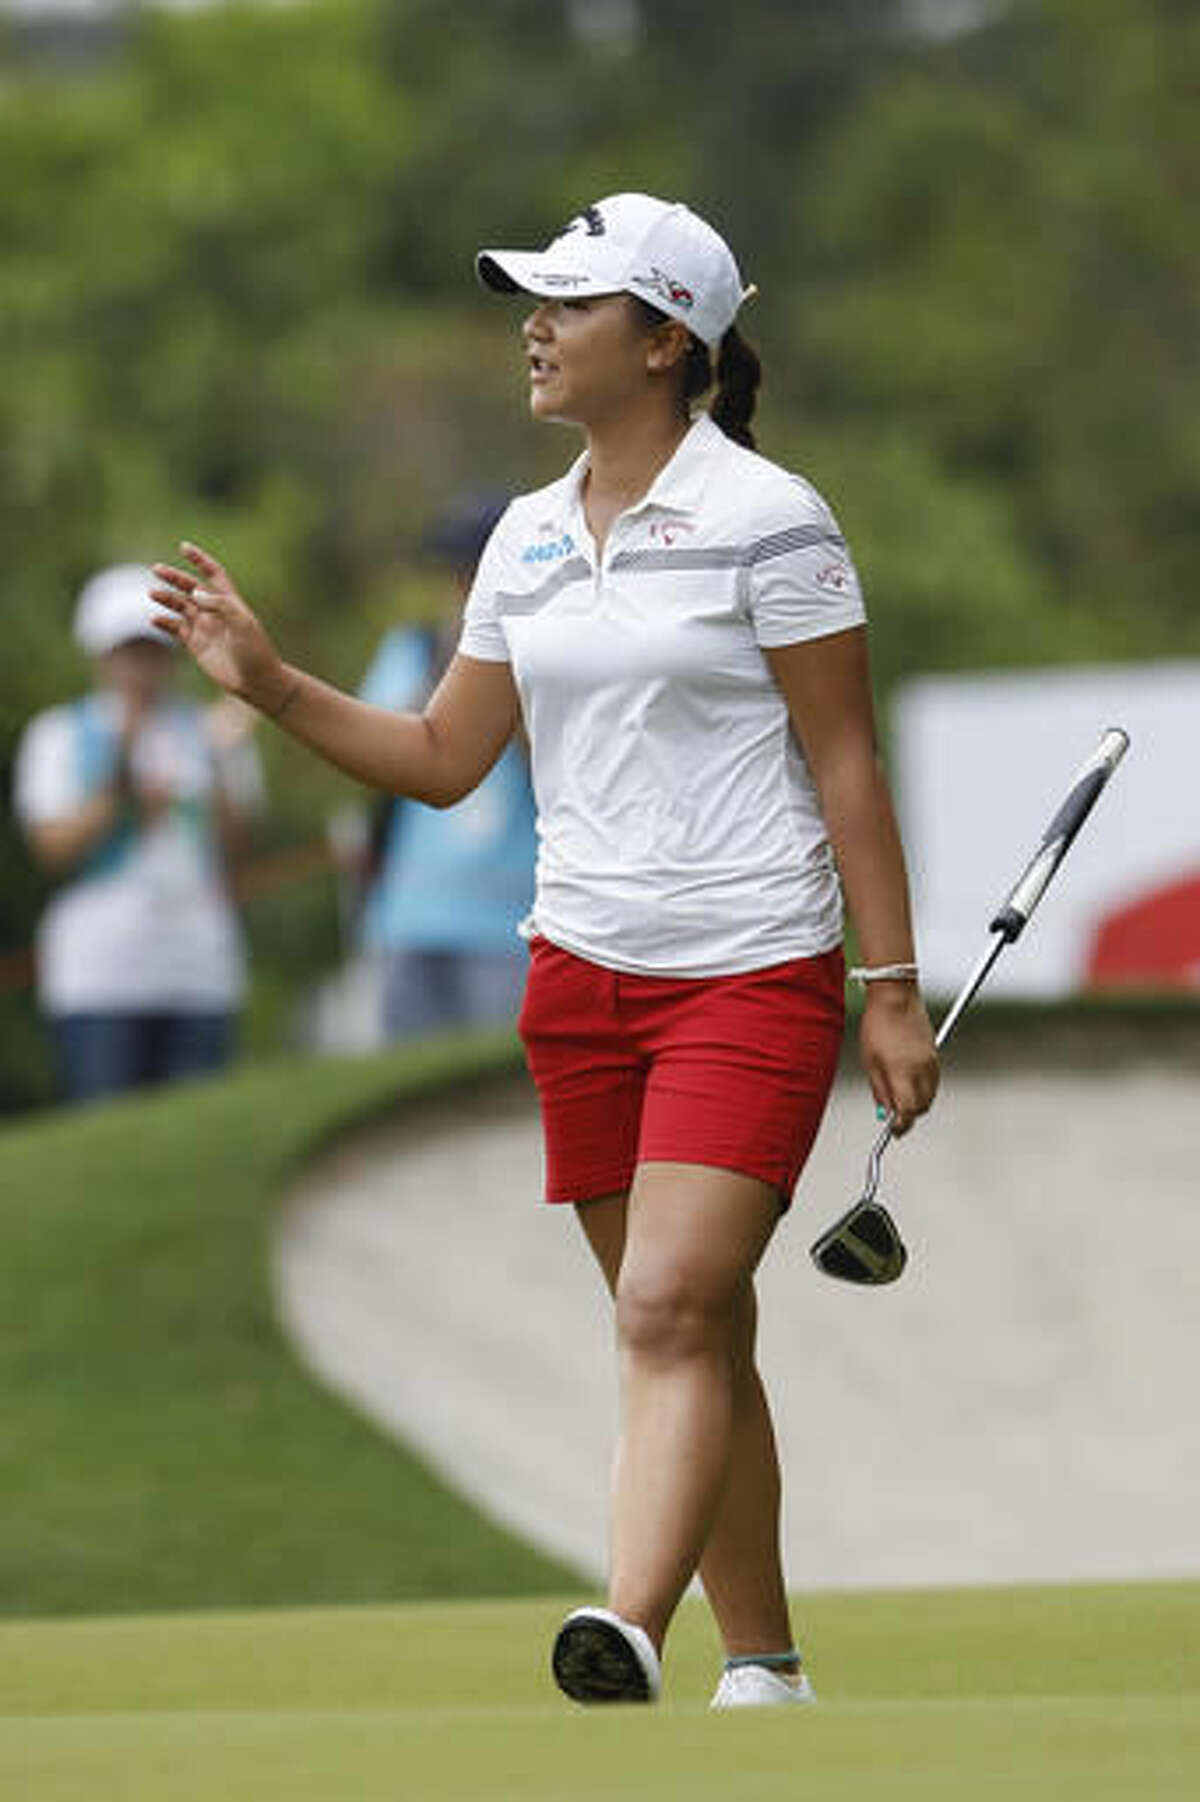 Lydia Ko of New Zealand acknowledges the crowd after putting on the eleventh green during the second round of the LPGA golf tournament at Tournament Players Club (TPC) in Kuala Lumpur, Malaysia, Friday, Oct. 28, 2016. (AP Photo/Joshua Paul)